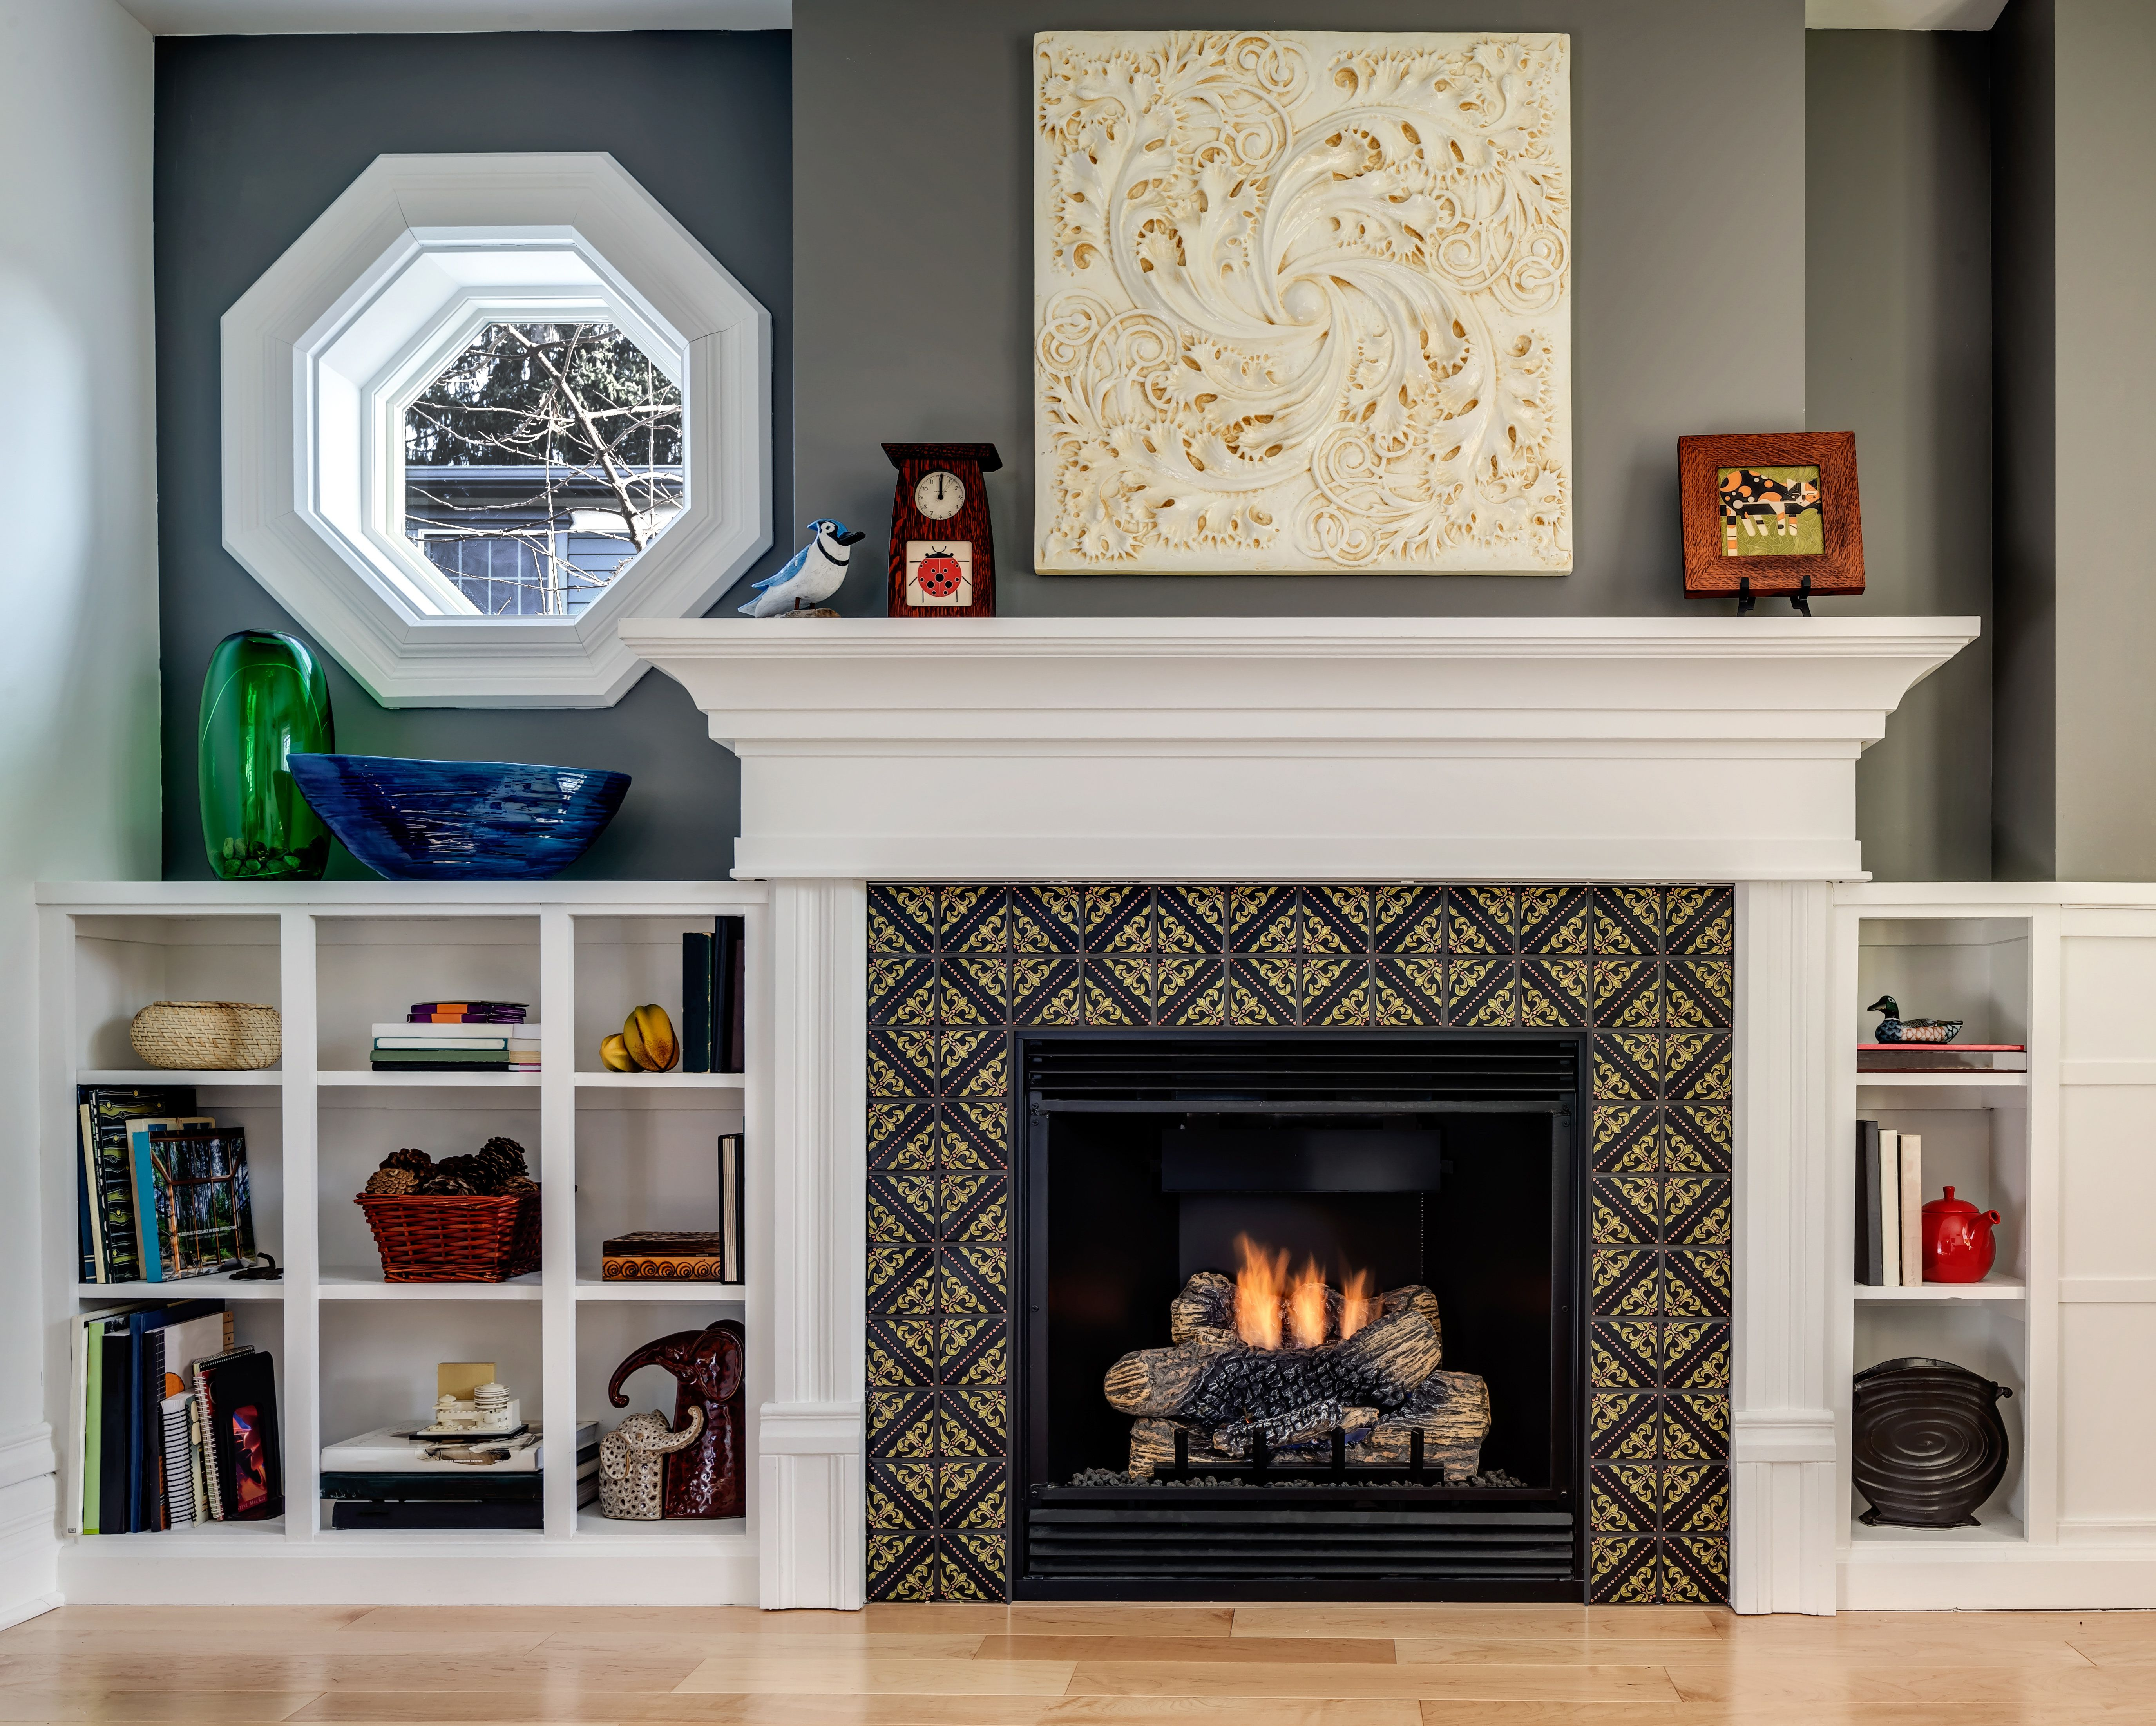 Green Fireplace Tile Lovely This Small but Stylish Fireplace Features Our Lisbon Tile